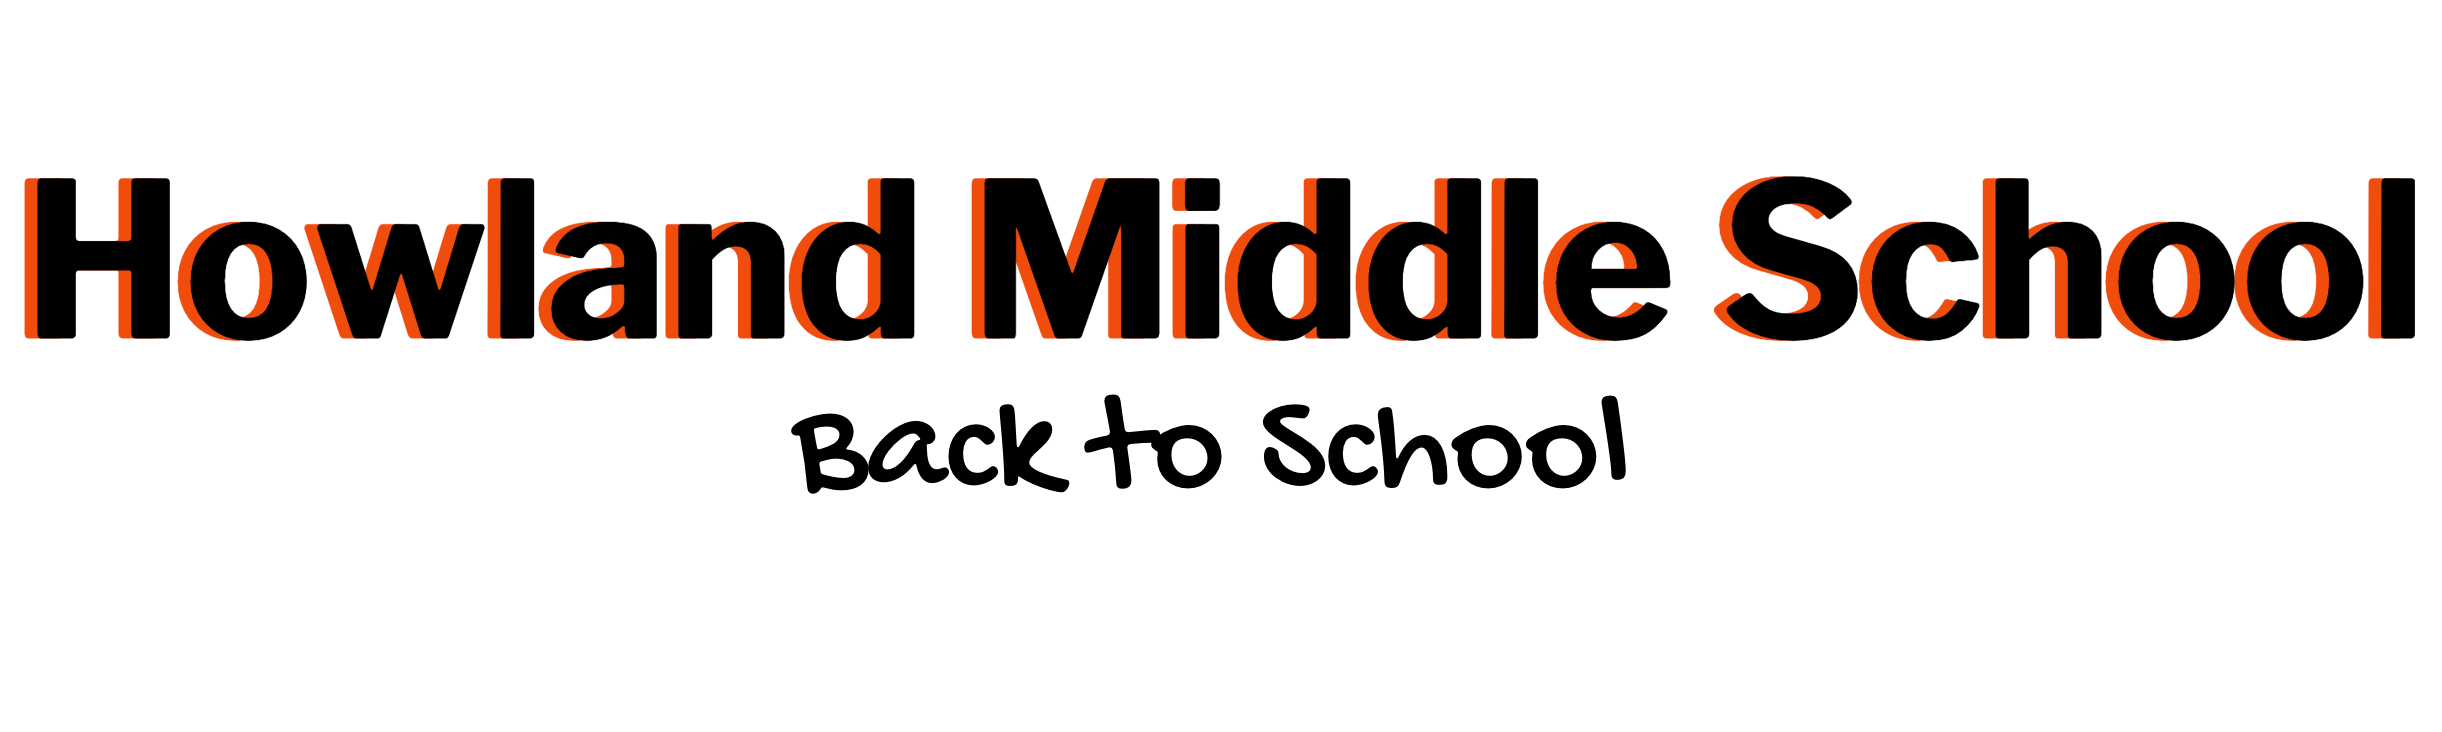 Howland Middle School